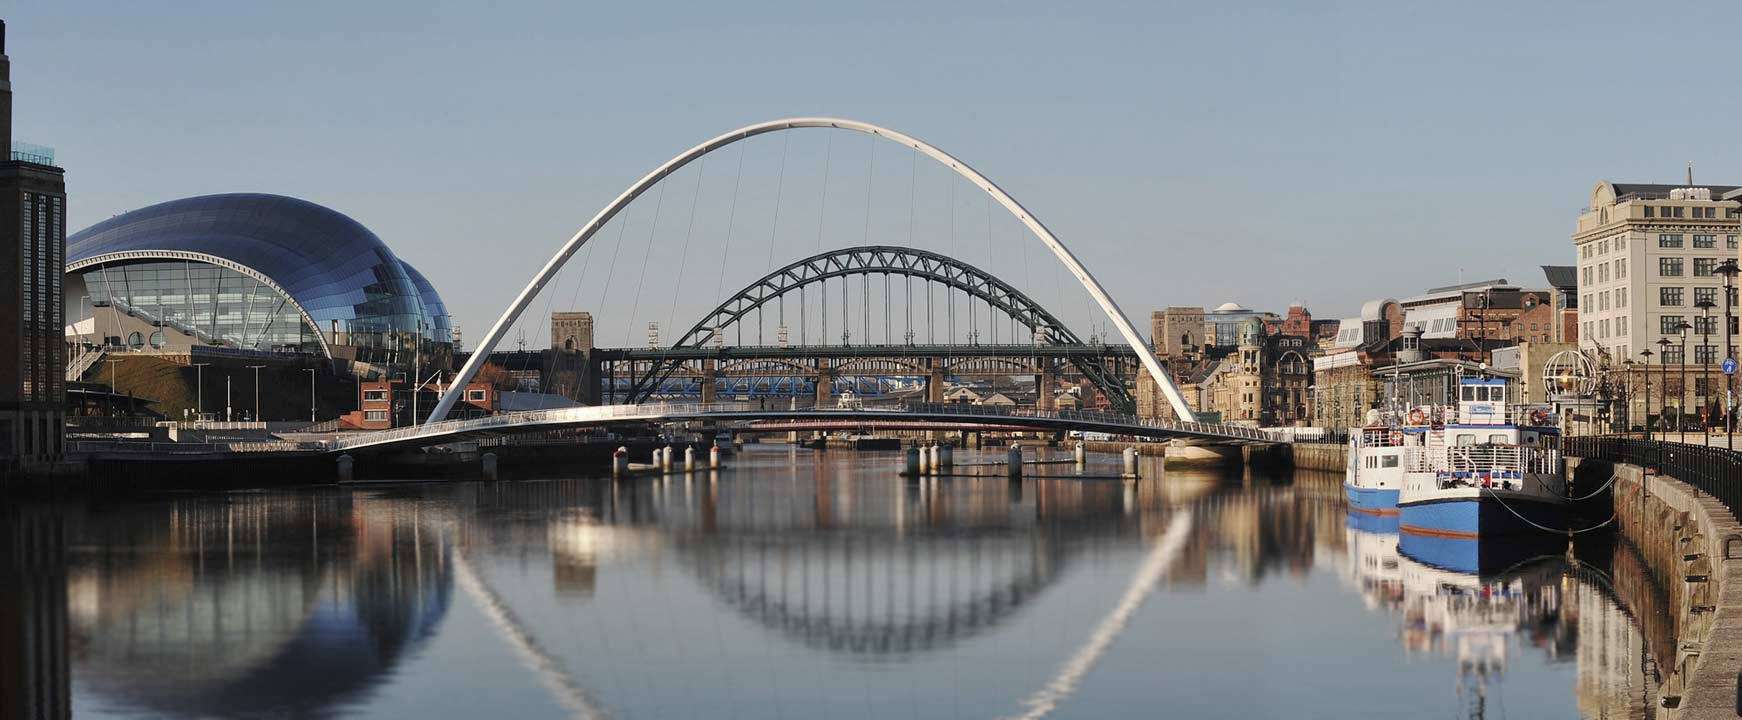 train and hotel deals to london from newcastle